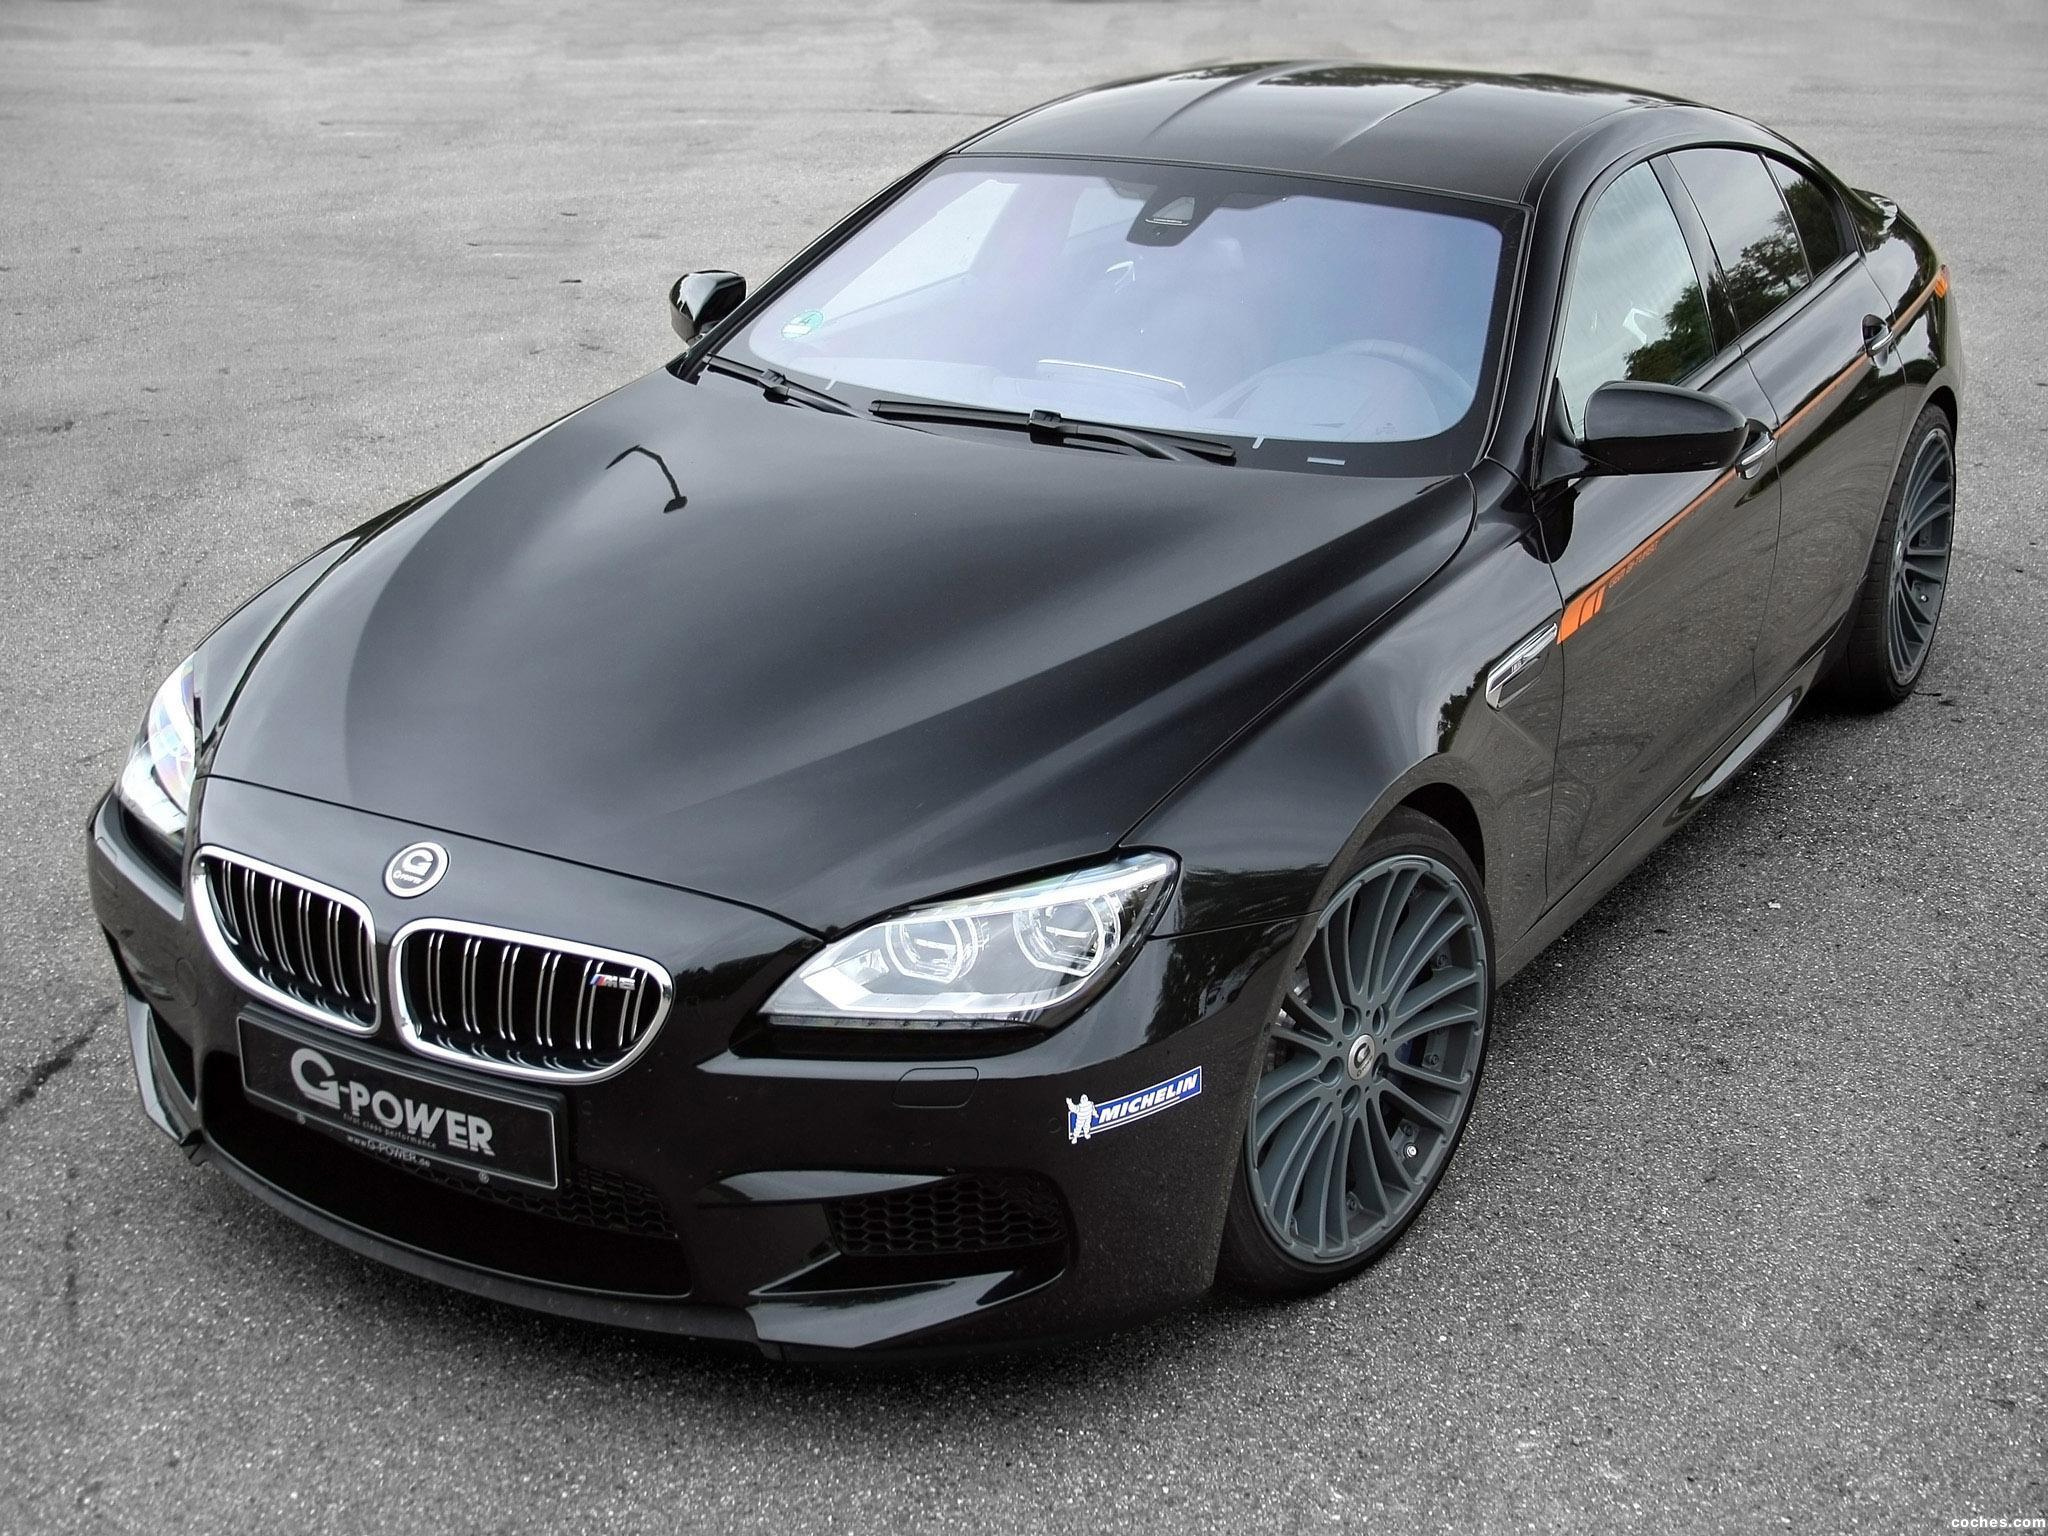 g-power_bmw-m6-gran-coupe-2013_r8.jpg